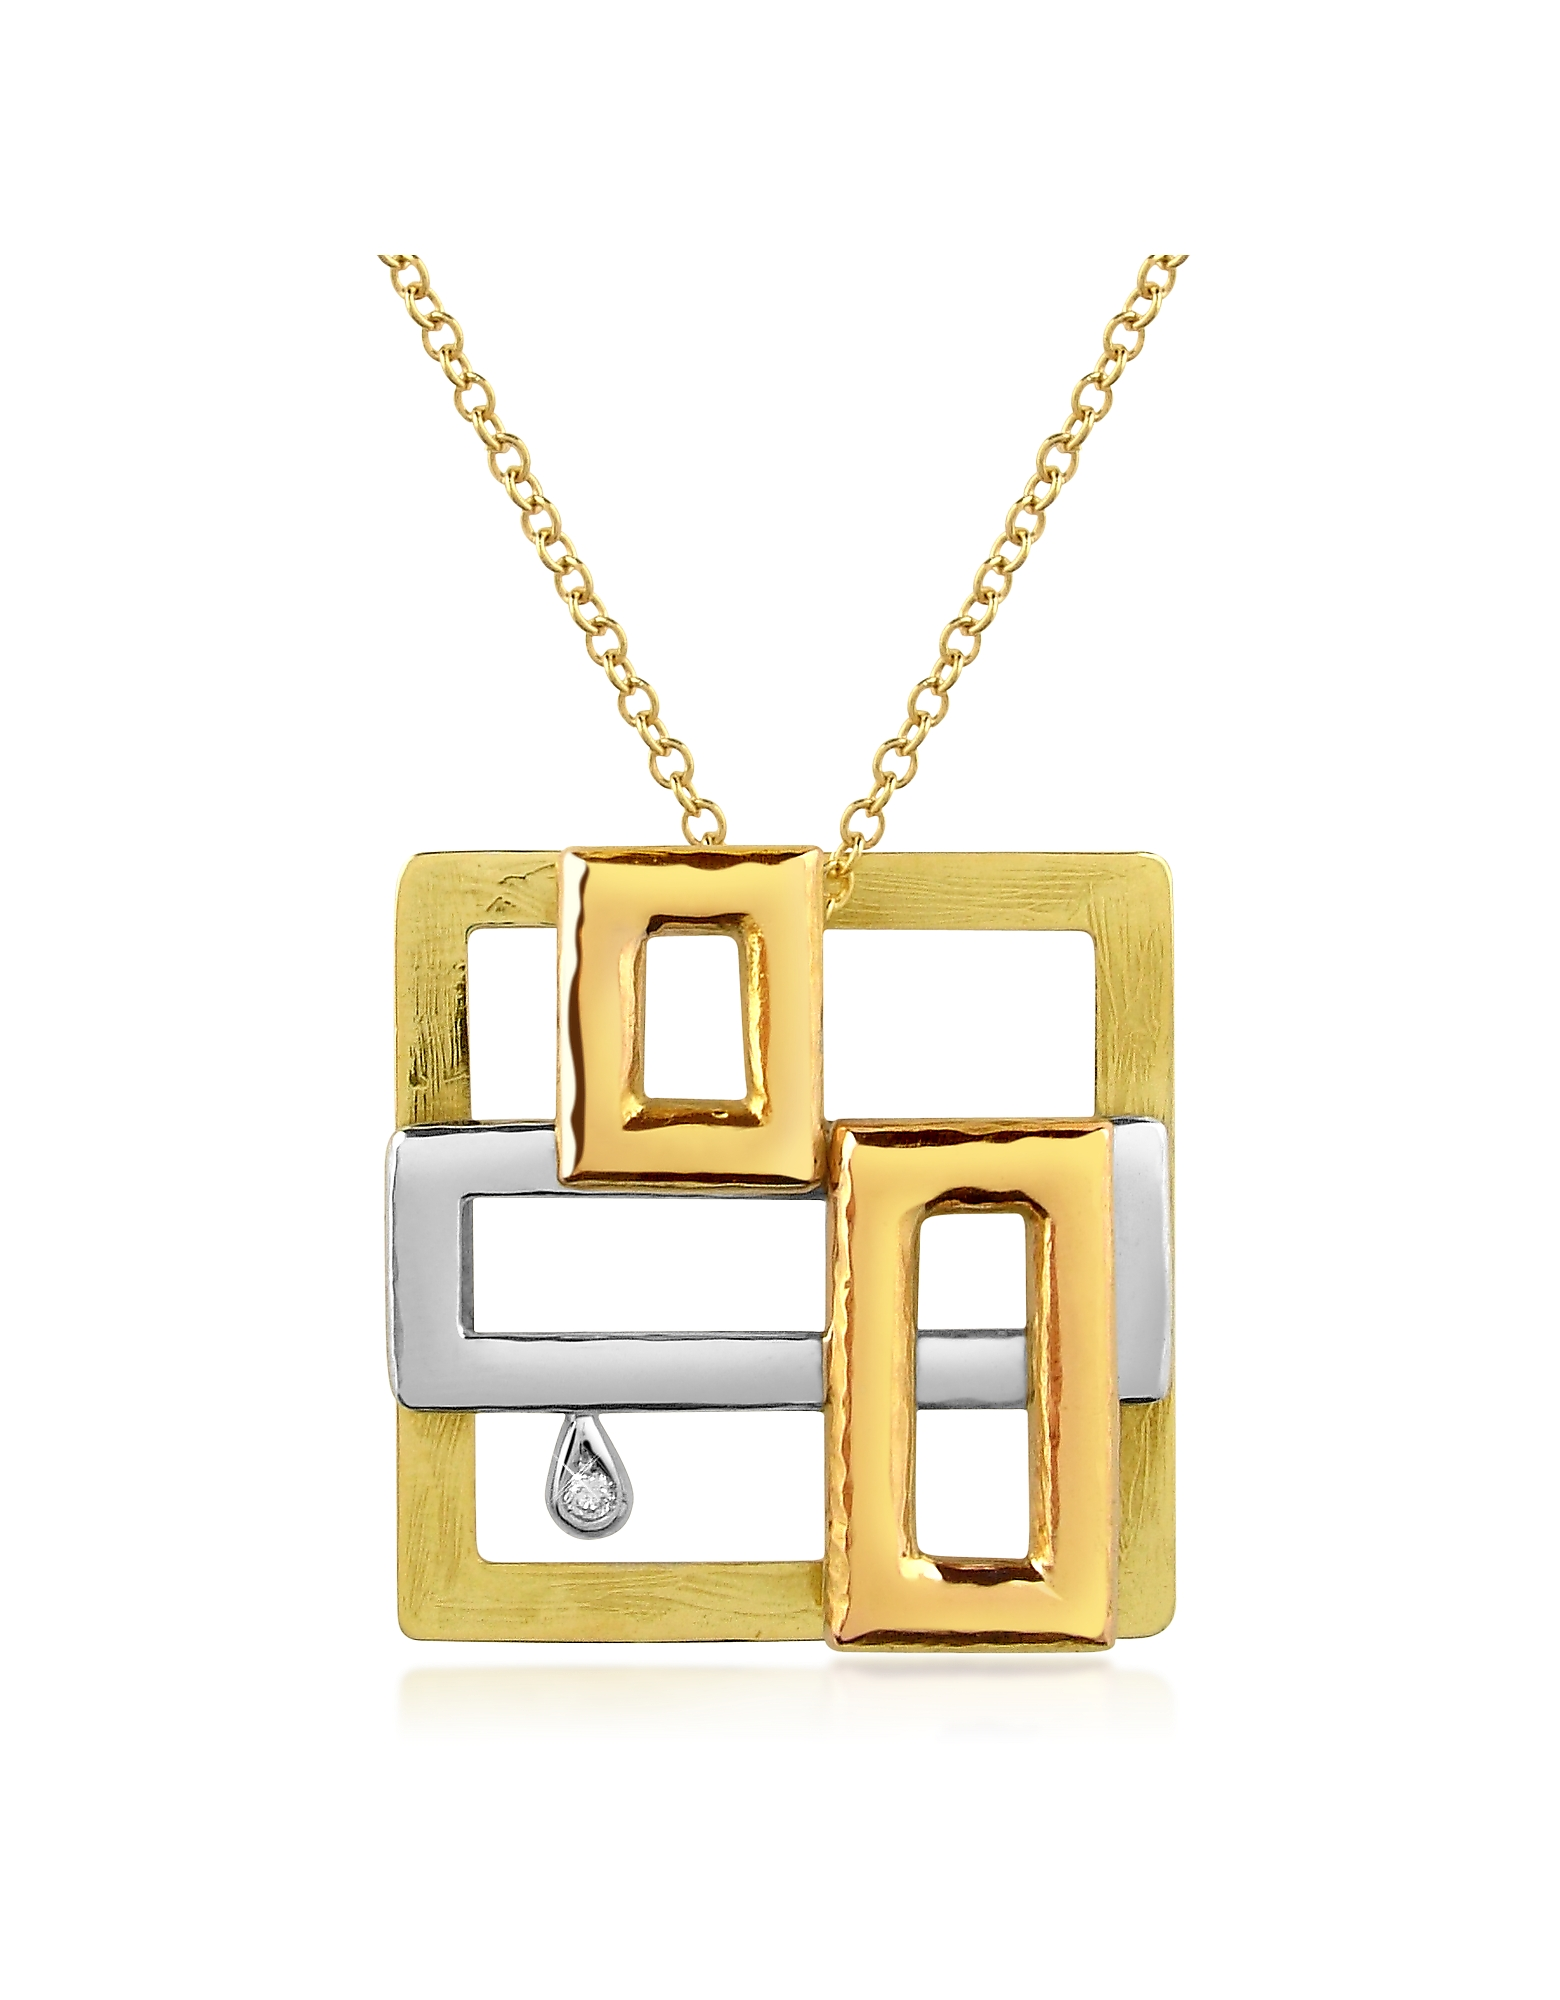 Torrini Necklaces, Cubisme Diamond 18K Gold Pendant Necklace